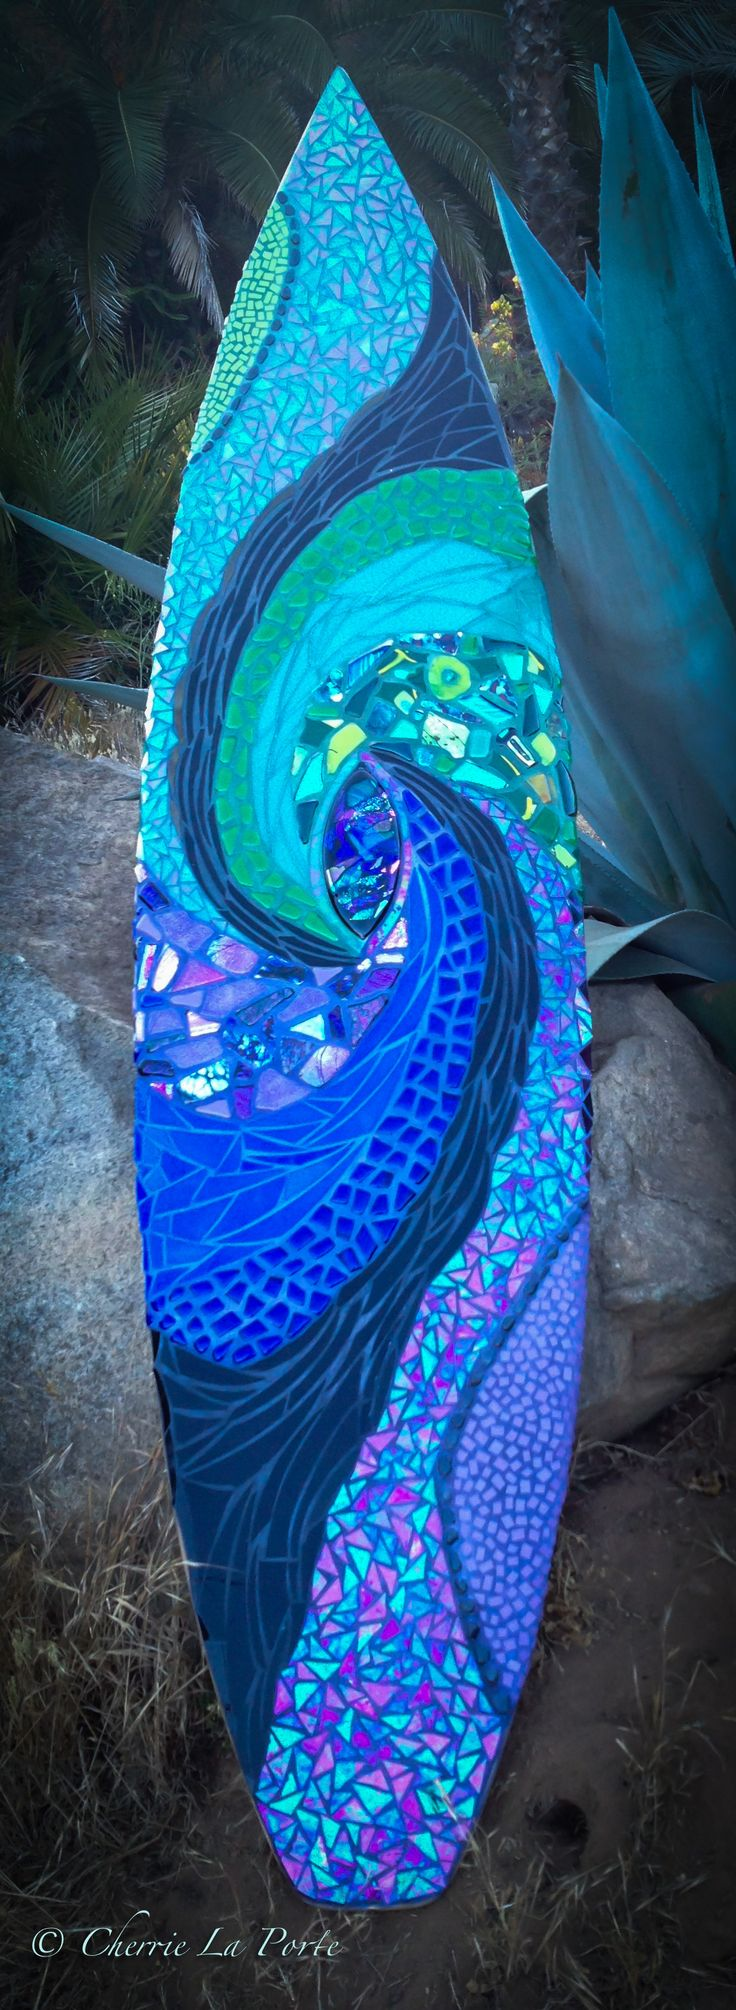 Kaleidoscope of the Sea custom surfboard by Cherrie LaPorte in private home collection of client in Southern CA. www.cherrielaporte.com